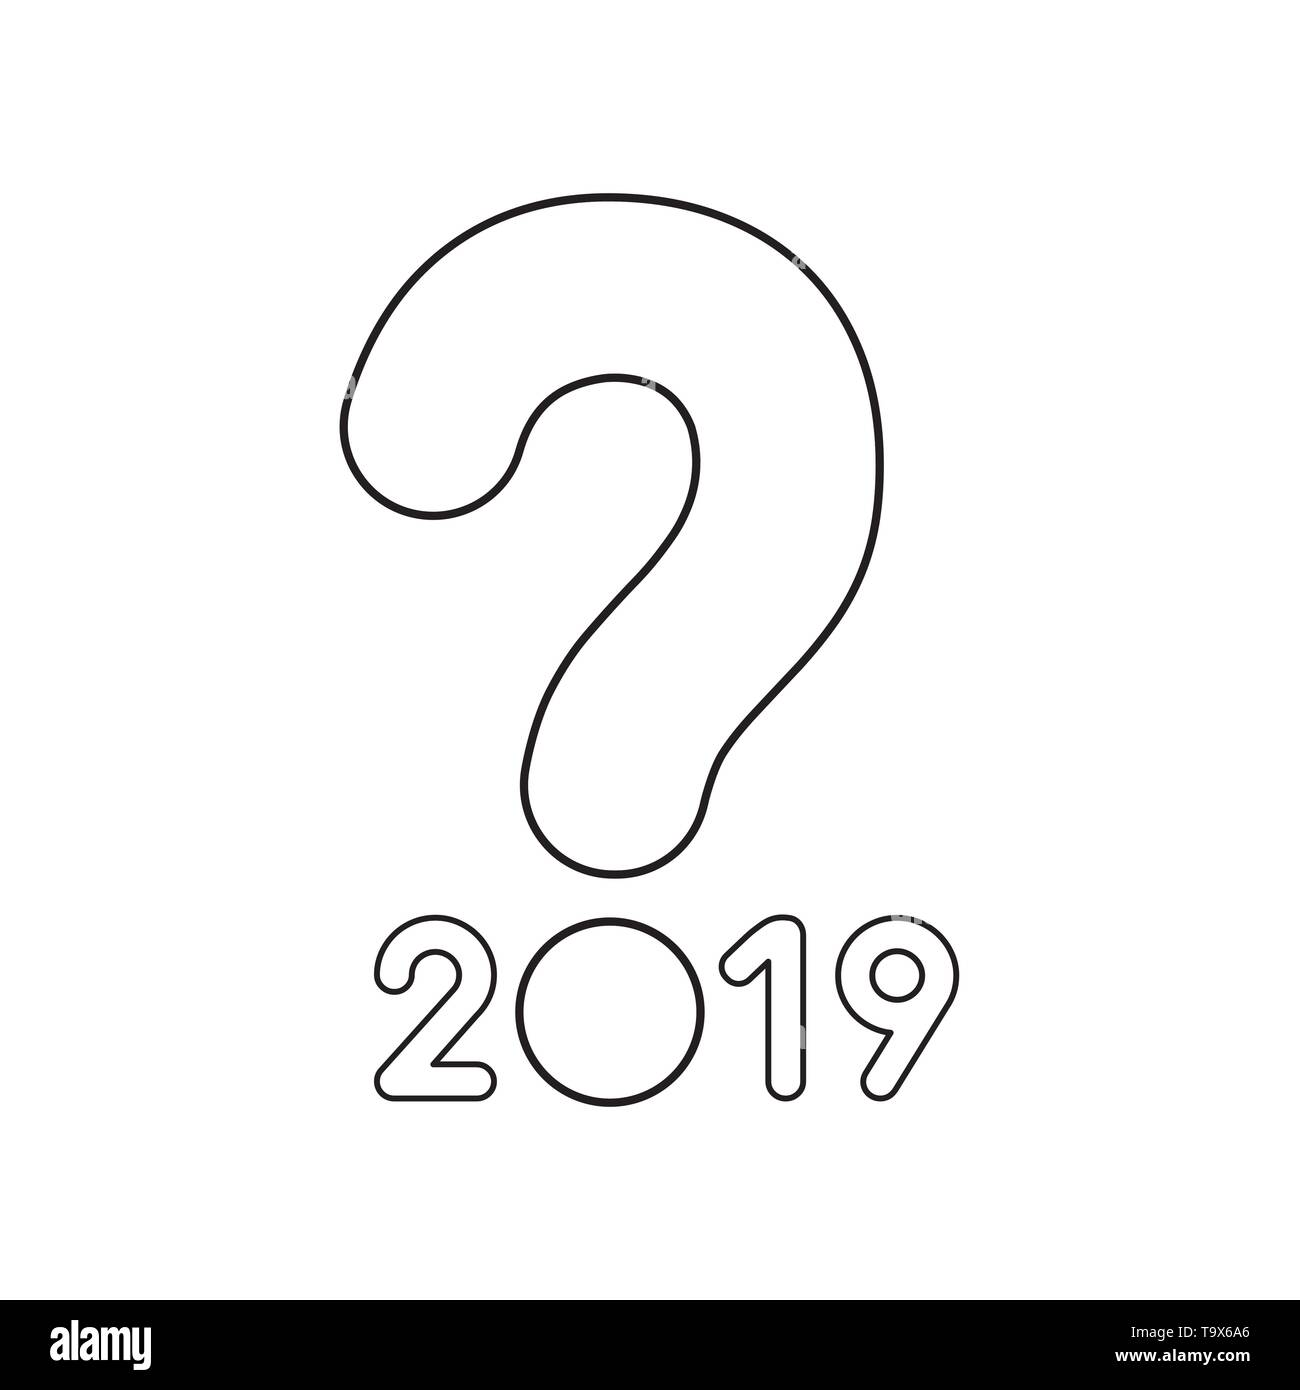 Vector icon concept of year of 2019 with question mark. Black outlines. - Stock Image